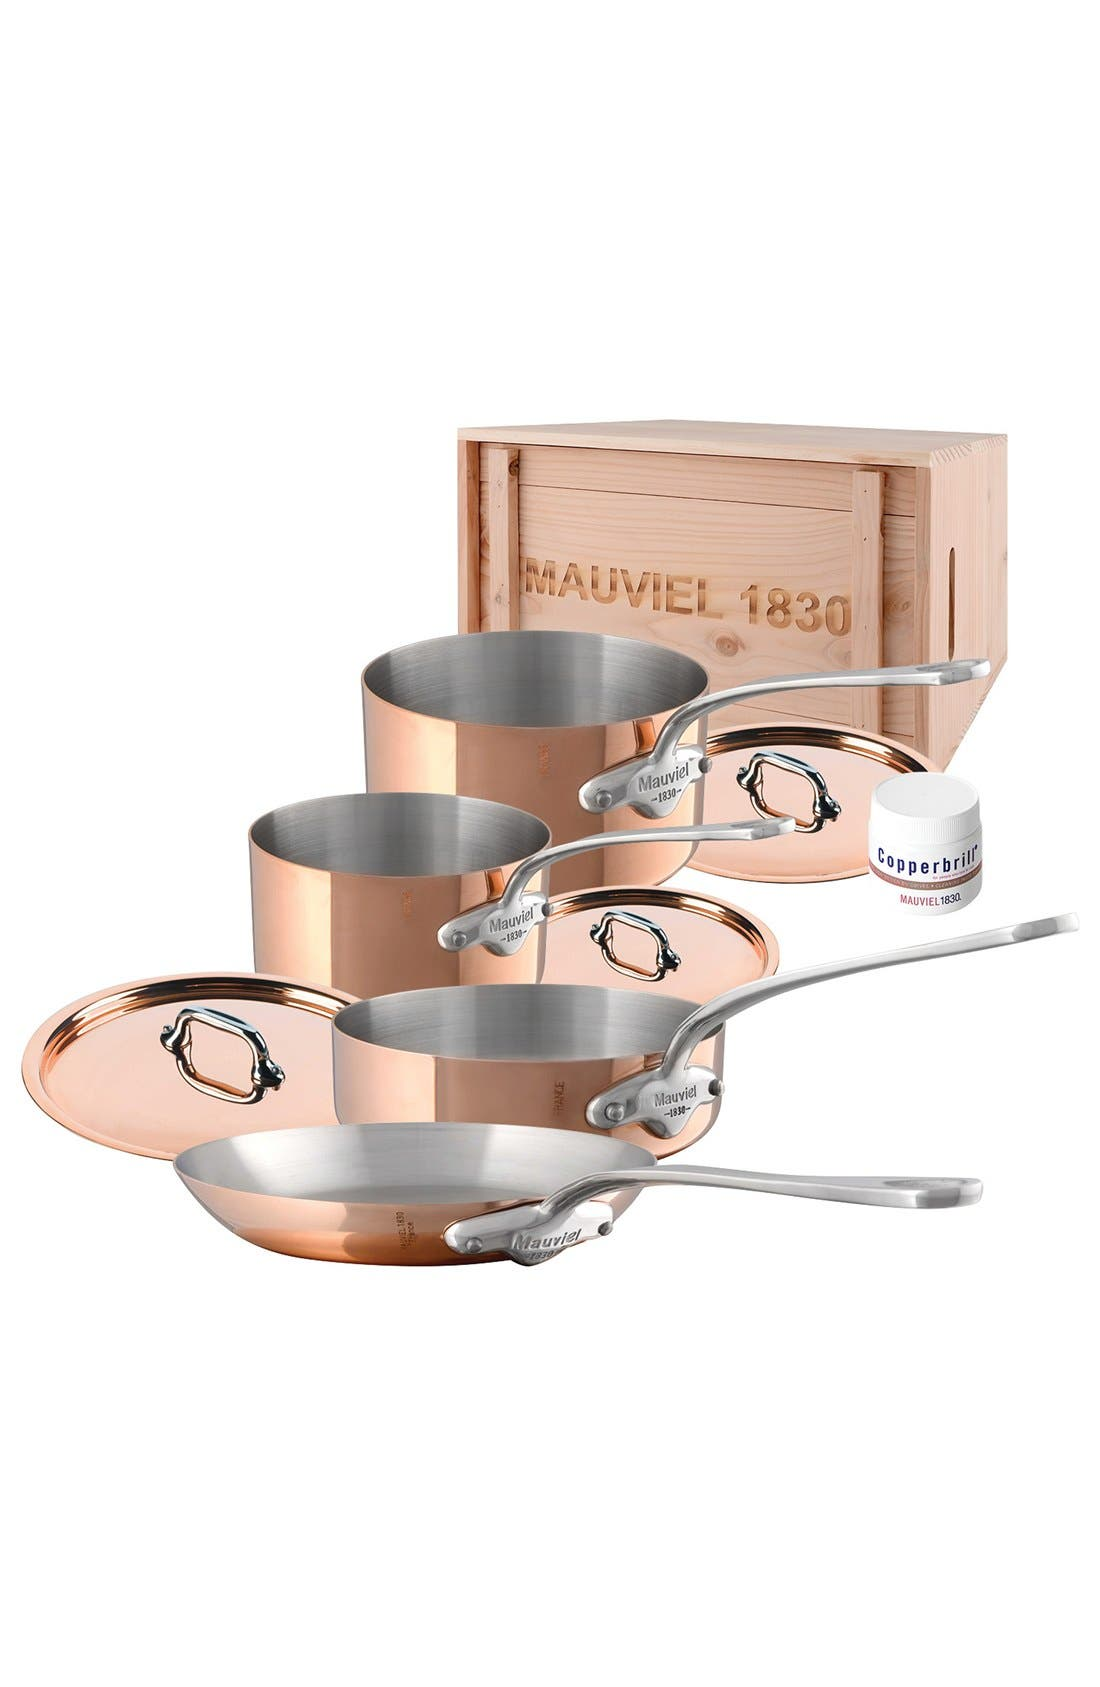 Mauviel 'M'héritage® - M'150s' 7-Piece Copper & Stainless Steel Cookware Set